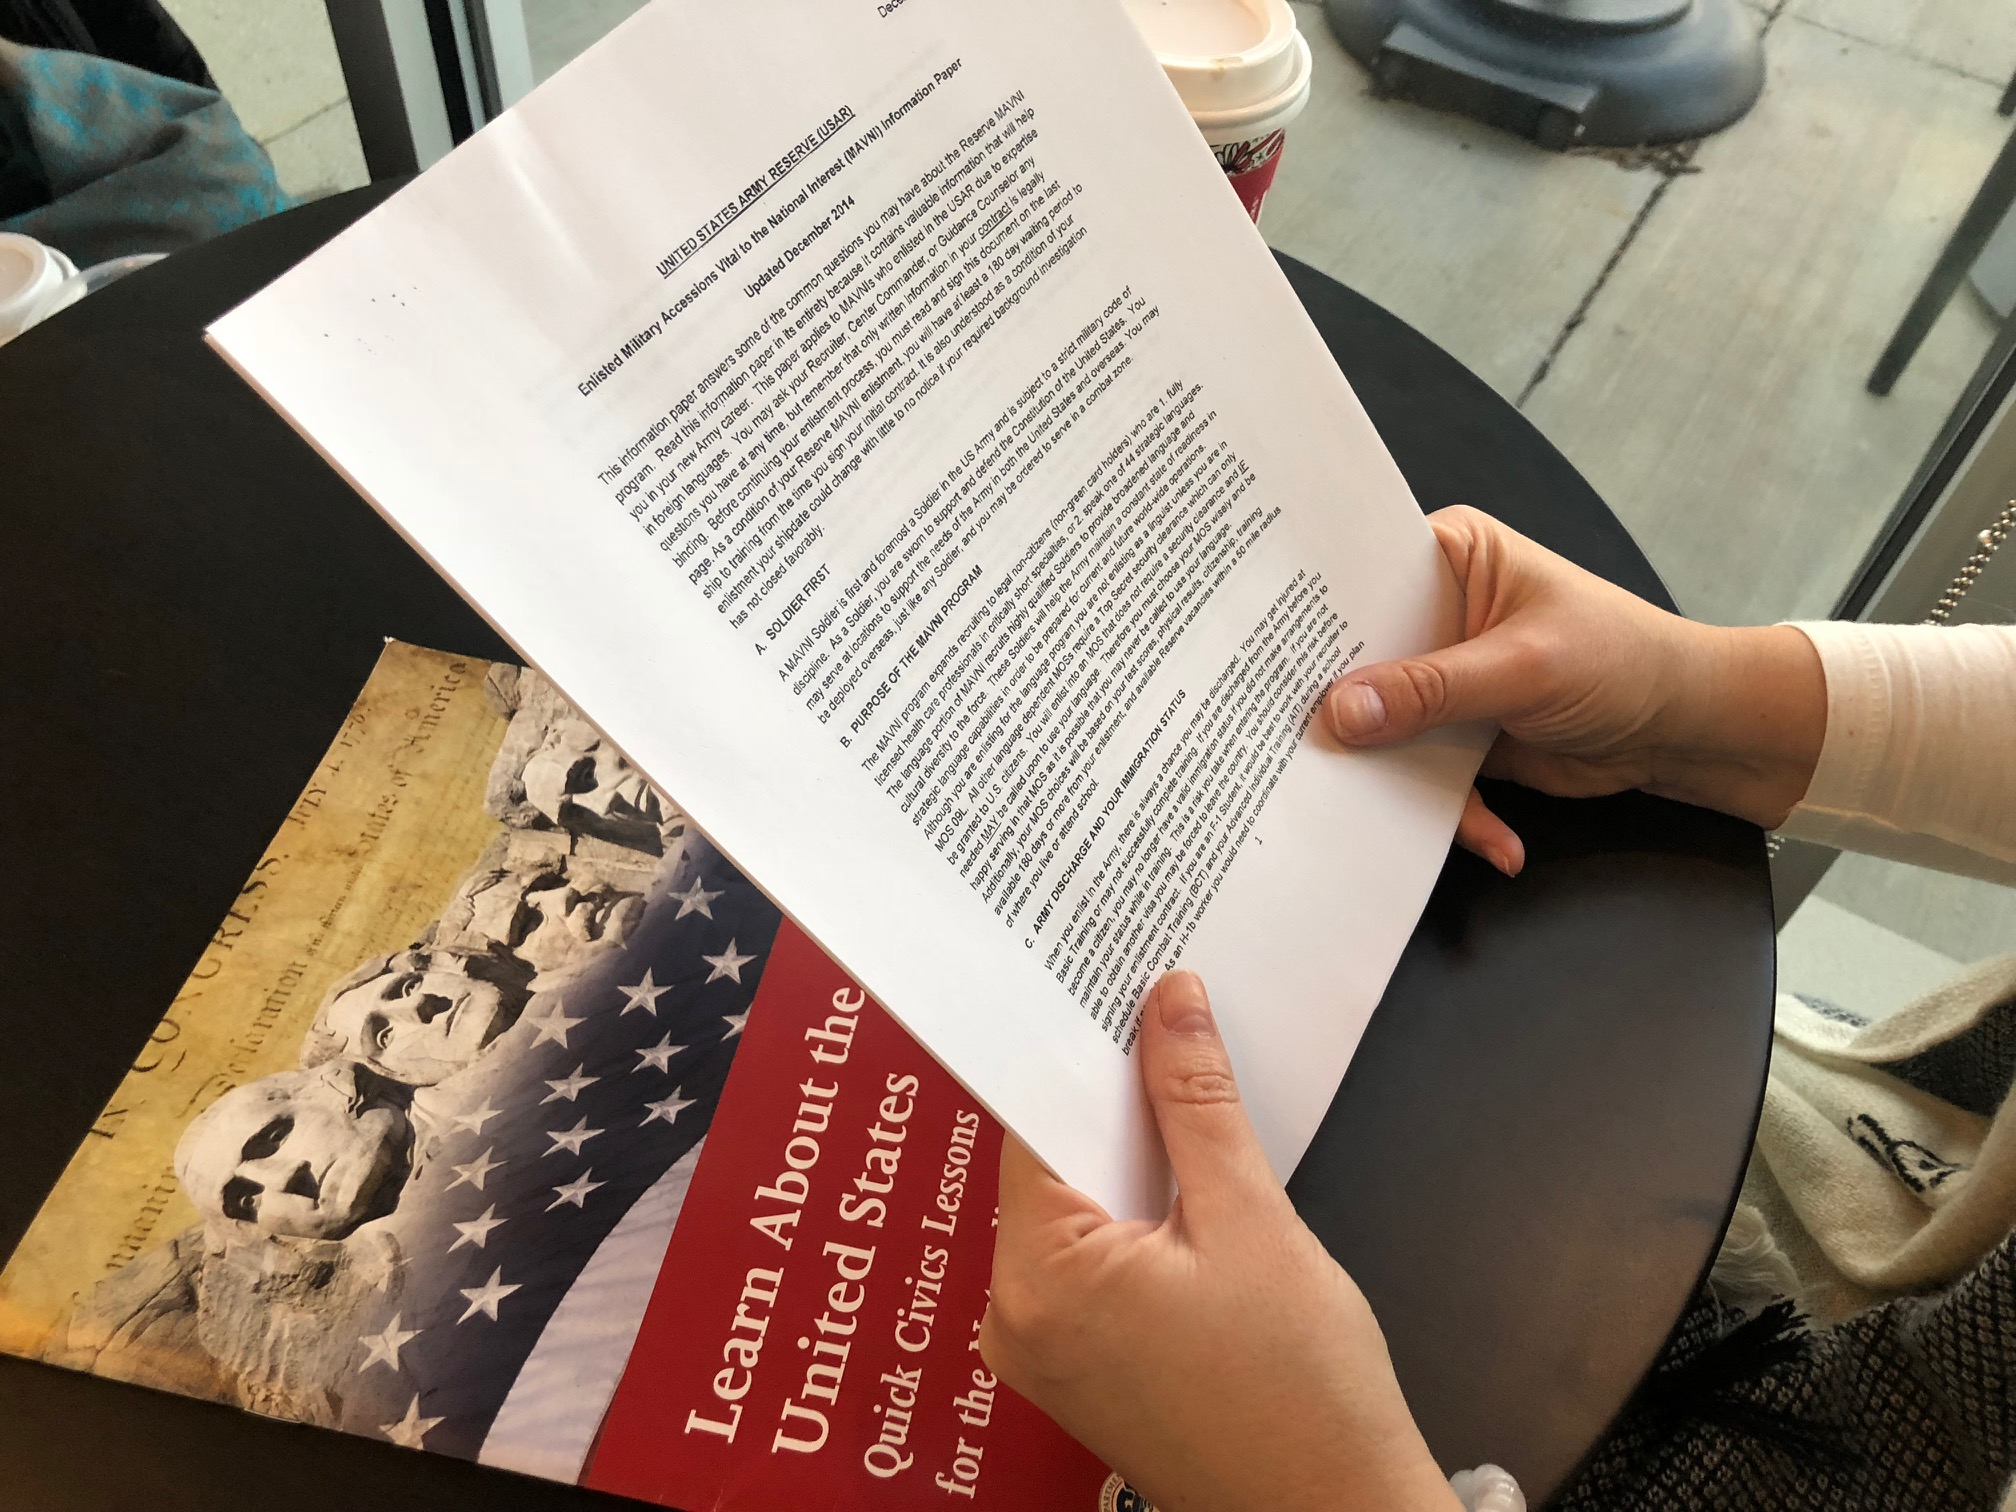 A.M., who asked not to be identified because she is afraid of deportation, enlisted in the Army in March 2015 under the Military Accessions Vital to the National Interest program or MAVNI.